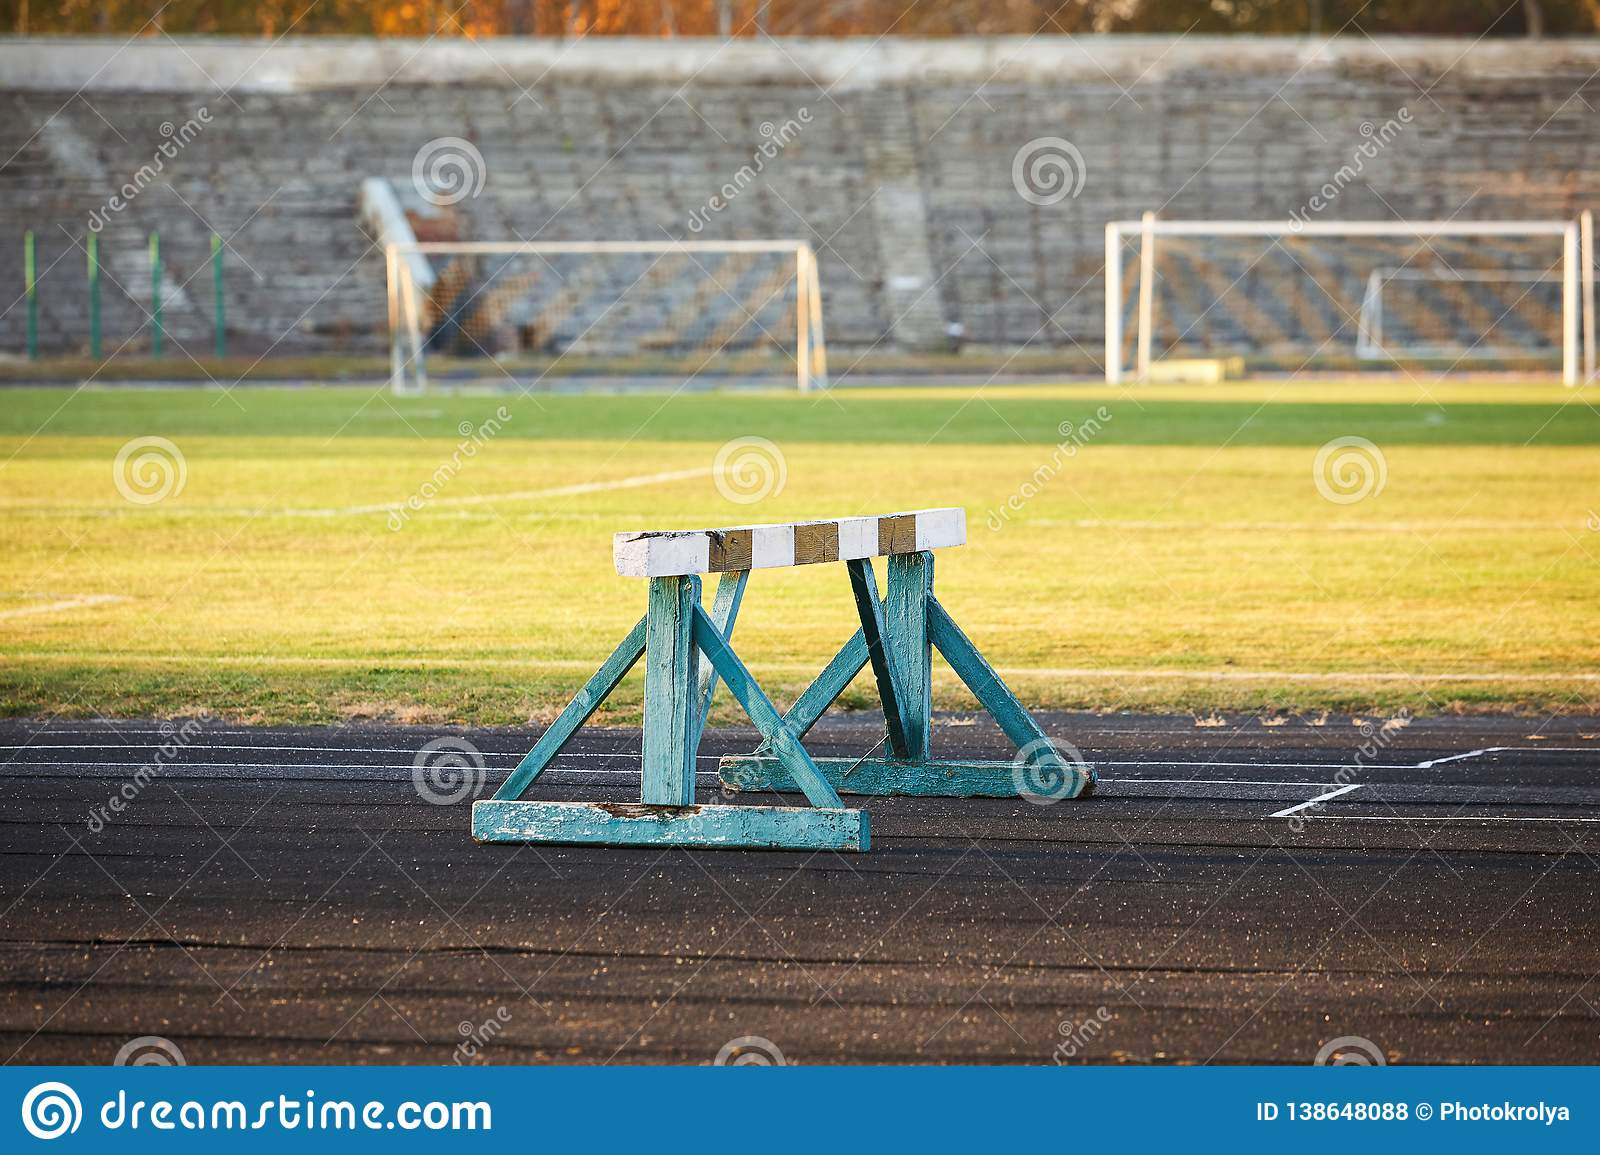 Old wooden hurdle race barrier obstacle